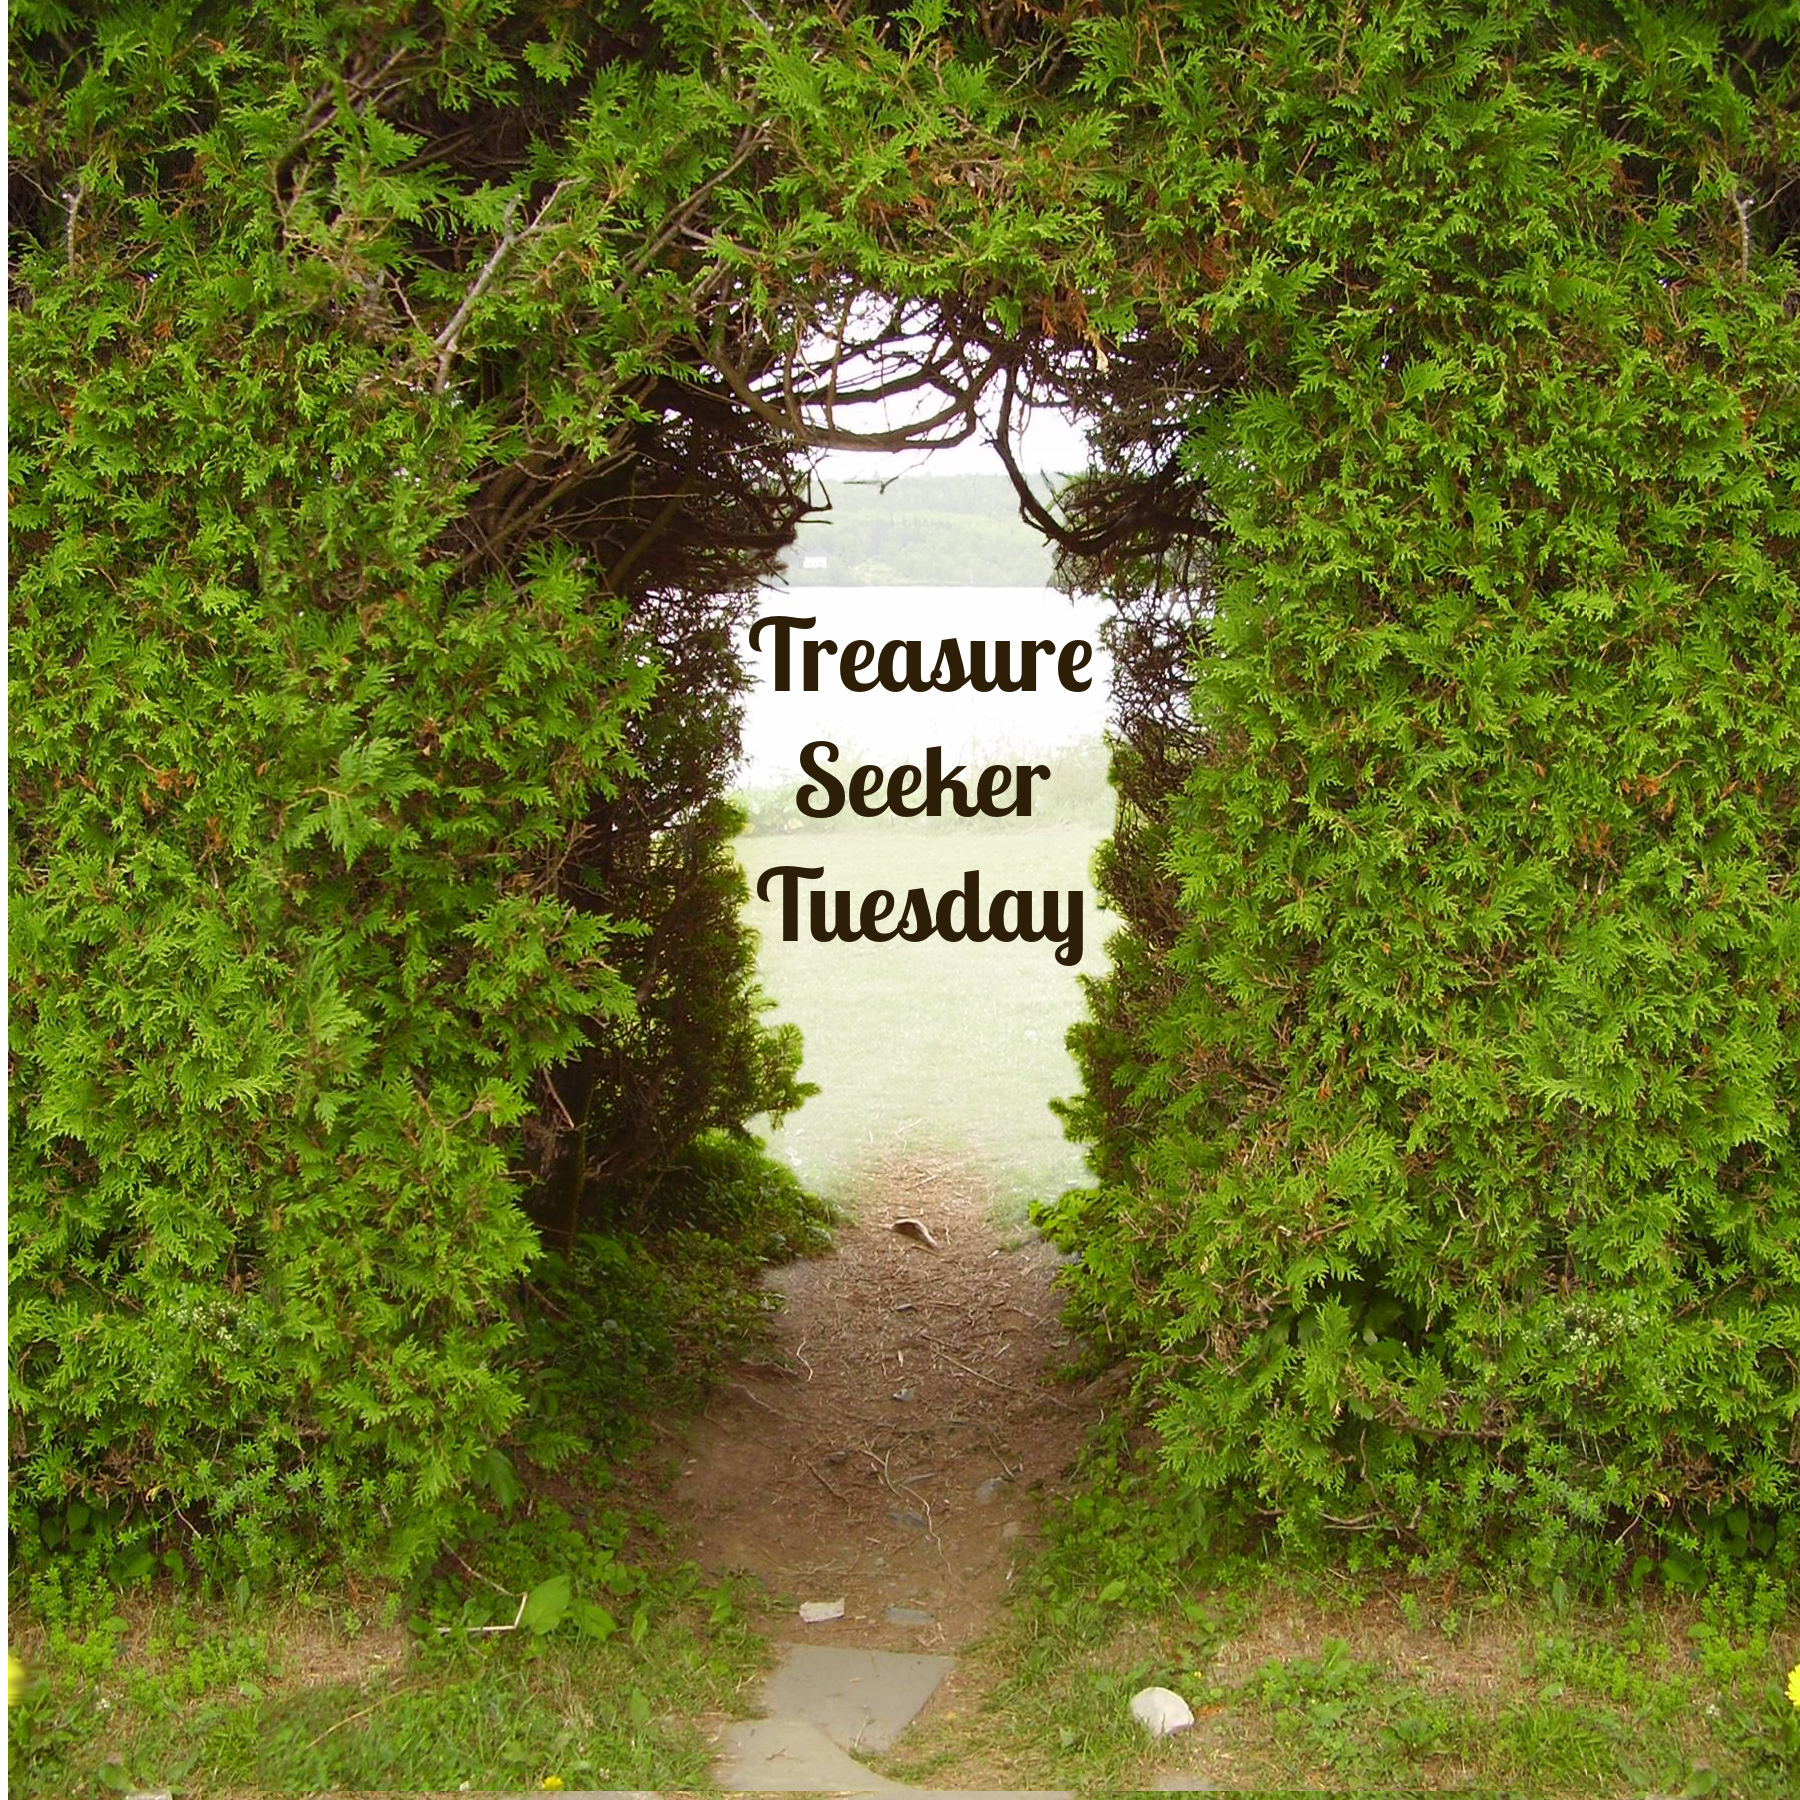 Treasure Seeker Tuesday #3